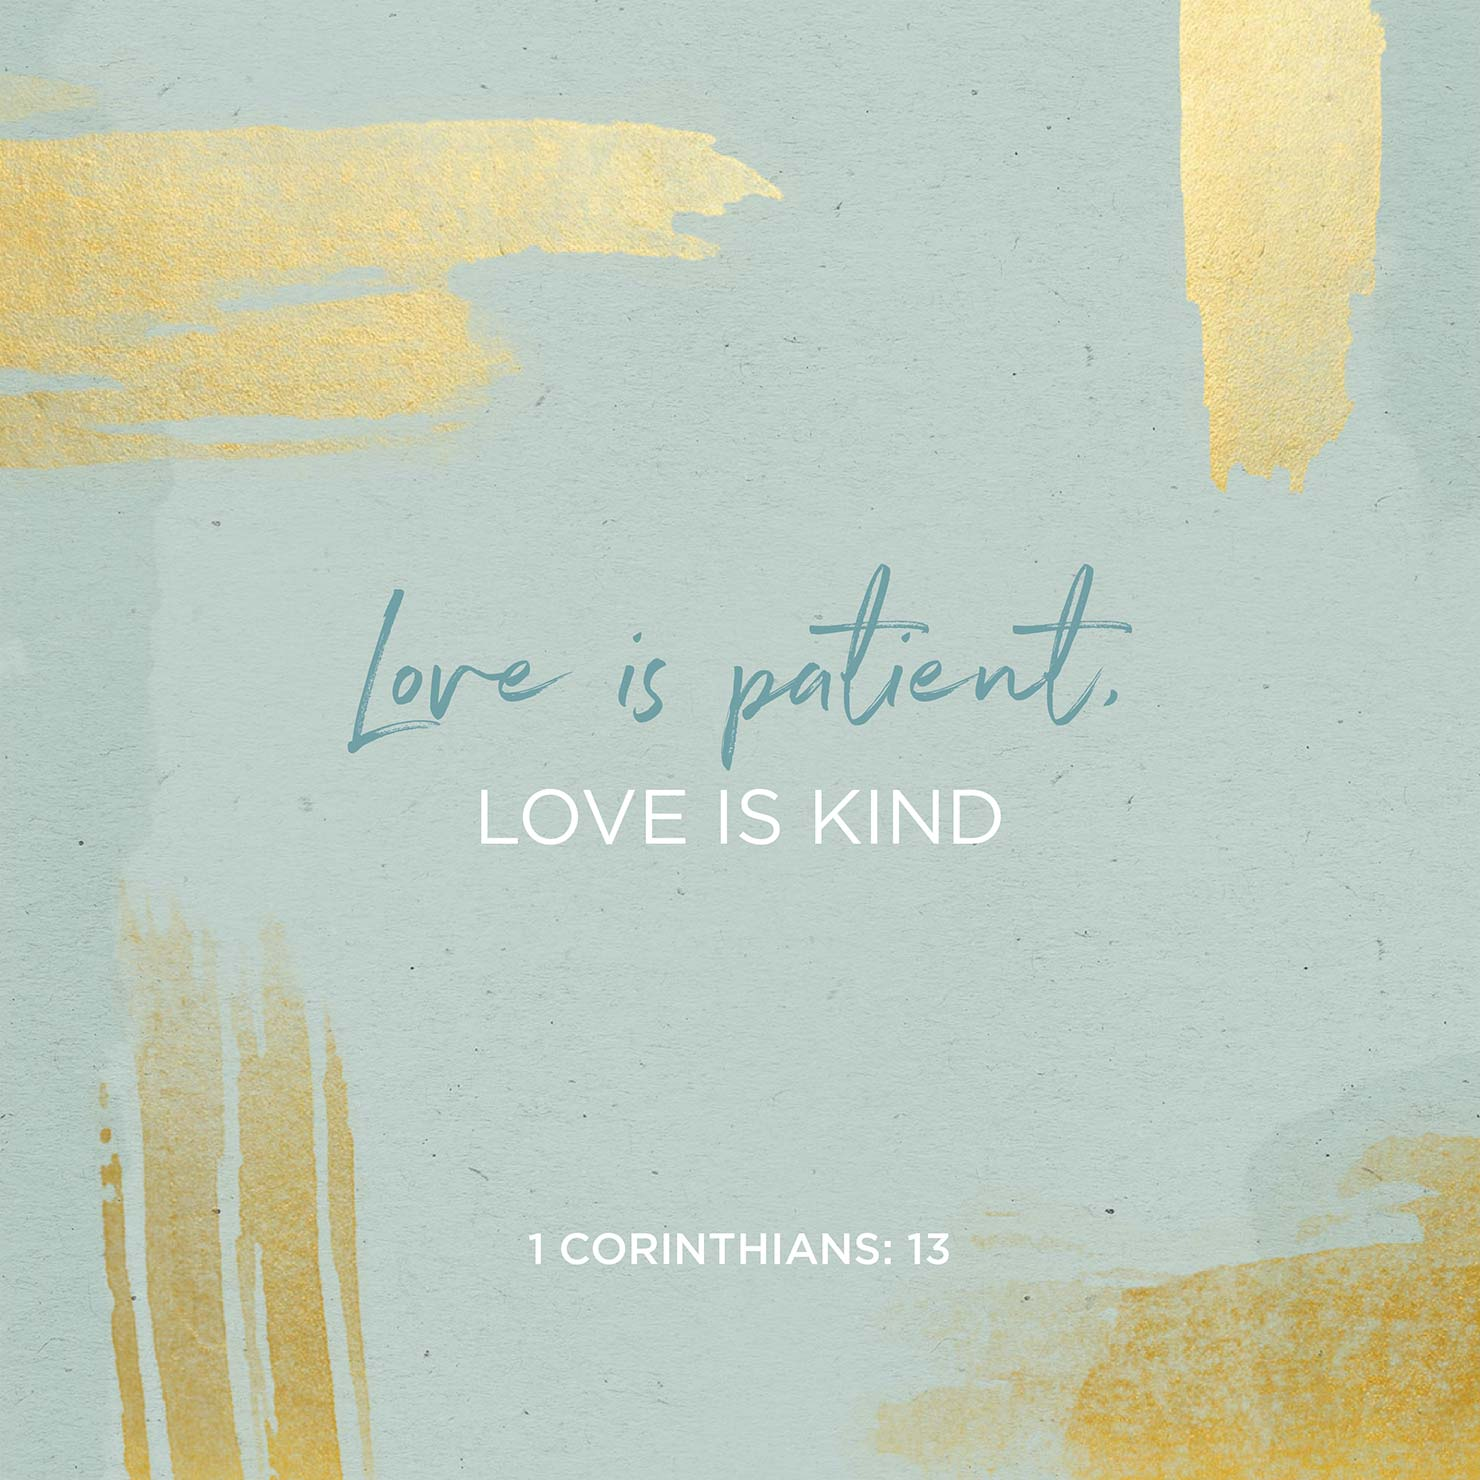 Love is patient love is kind bible verse illustration.